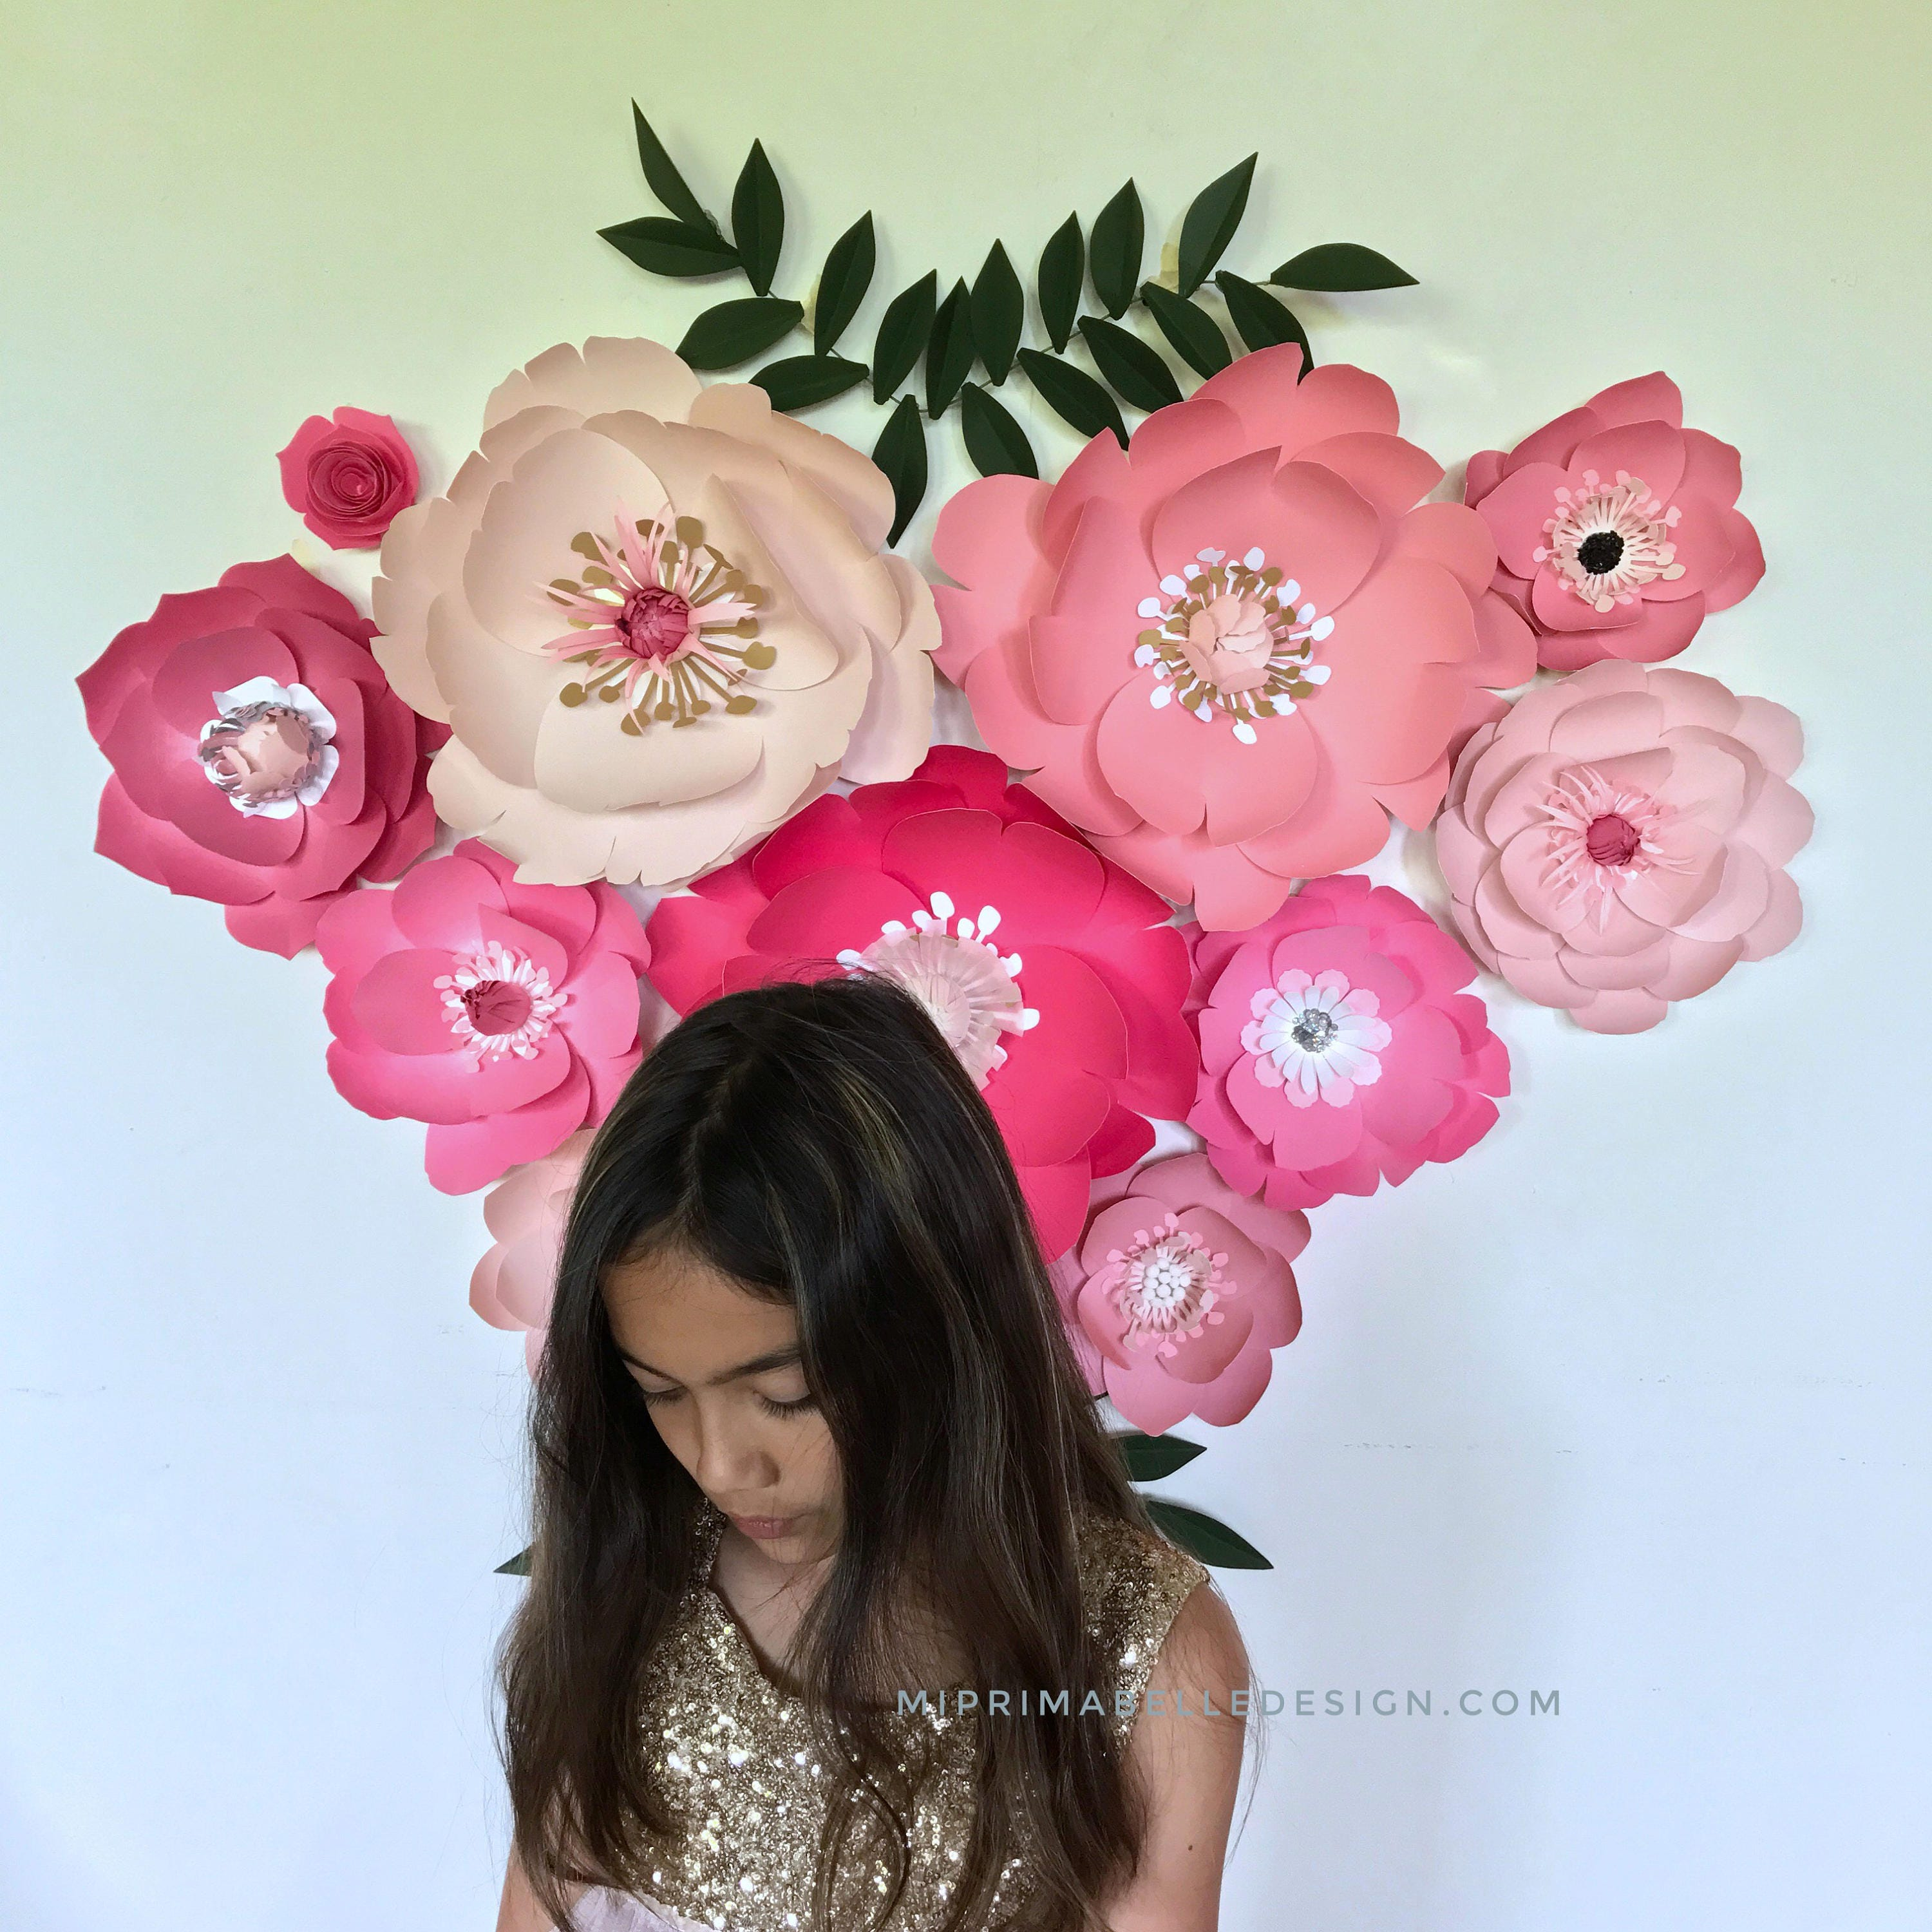 Paper flowers pink baby girl nursery room giant flower wall decor paper flowers pink baby girl nursery room giant flower wall decor girl first birthday party backdrop wedding flowers photo booth decor izmirmasajfo